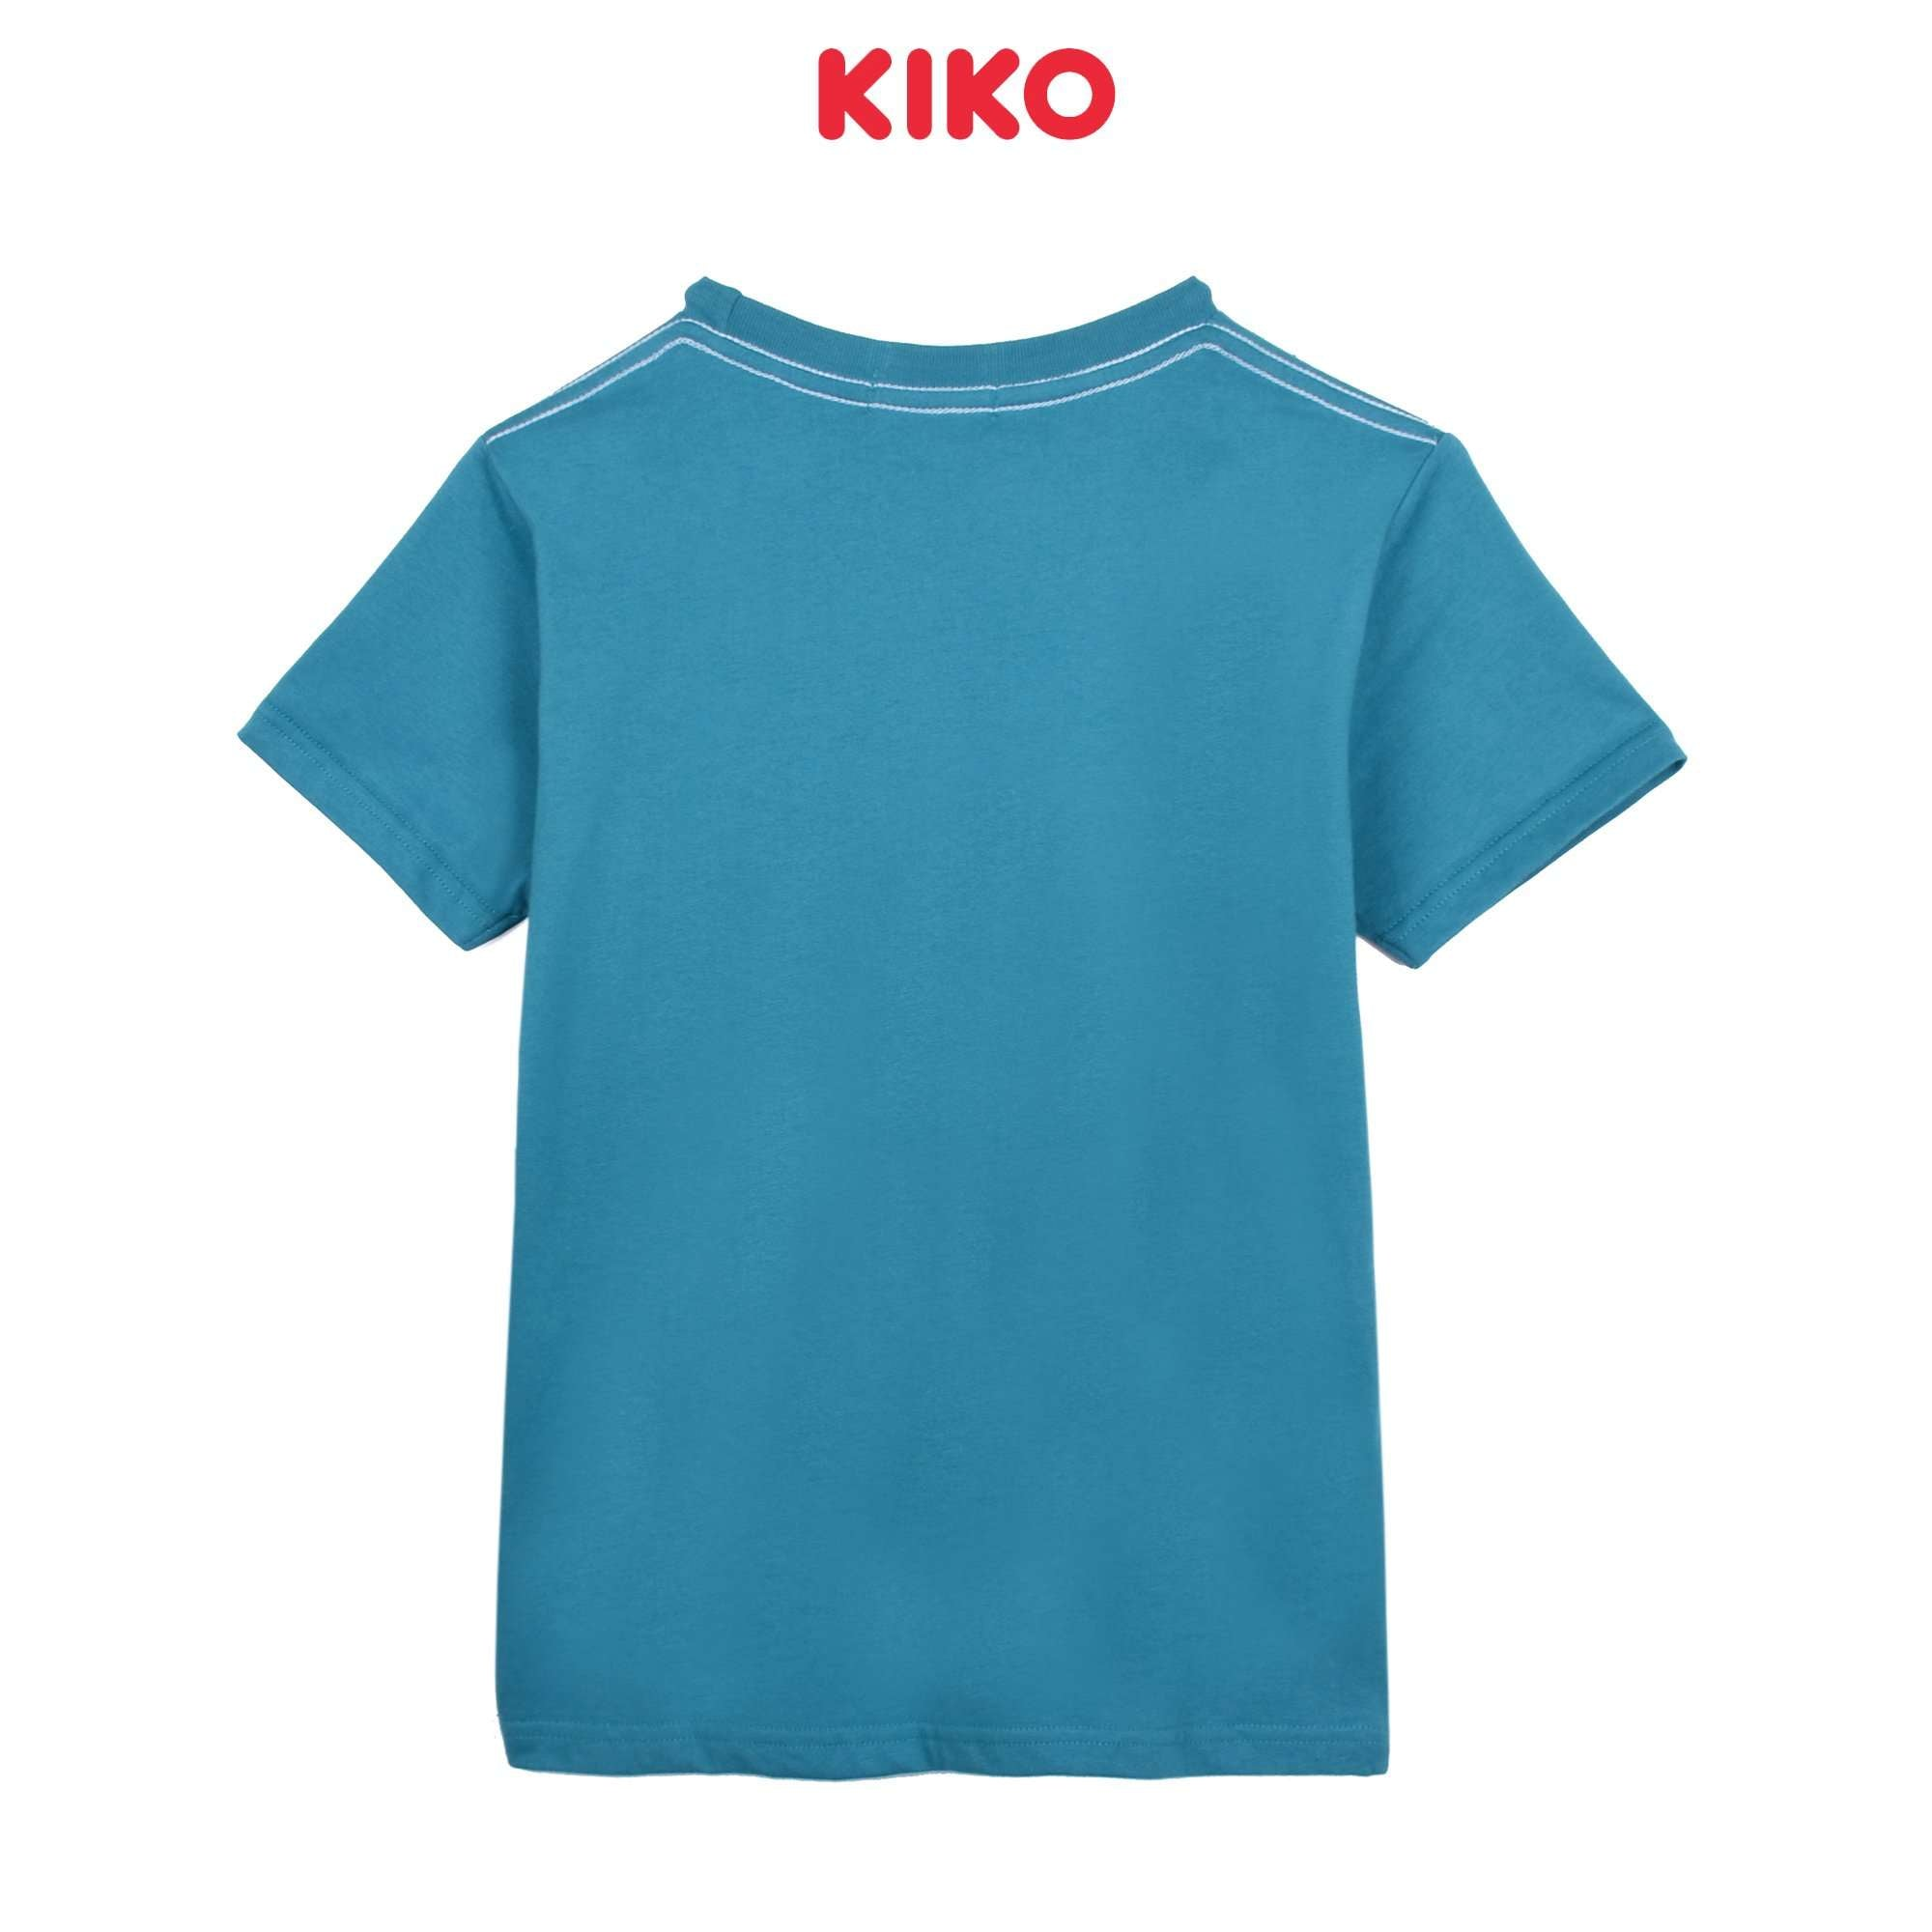 KIKO Boy Short Sleeve Tee - Green K923103-1123-N5 : Buy KIKO online at CMG.MY